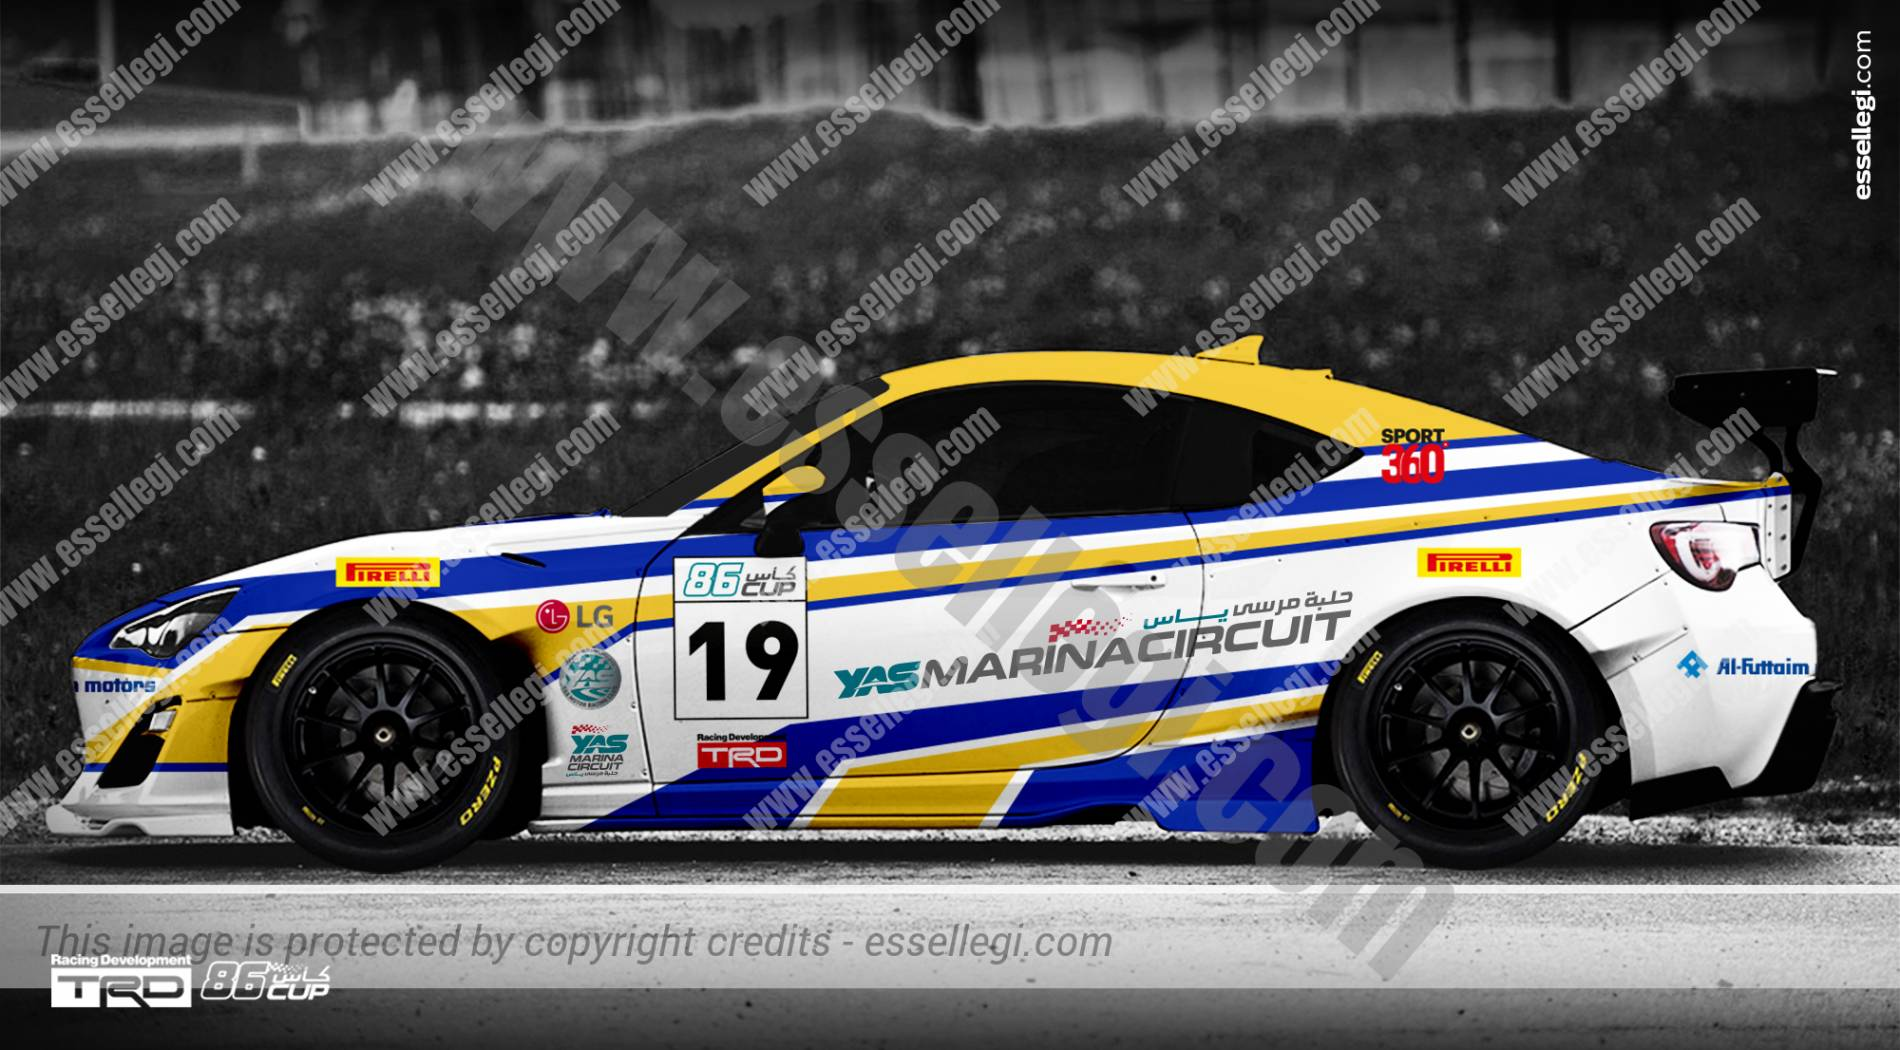 Toyota 86 Livery >> Toyota Gt86 Motorsport Racing Race Car Livery